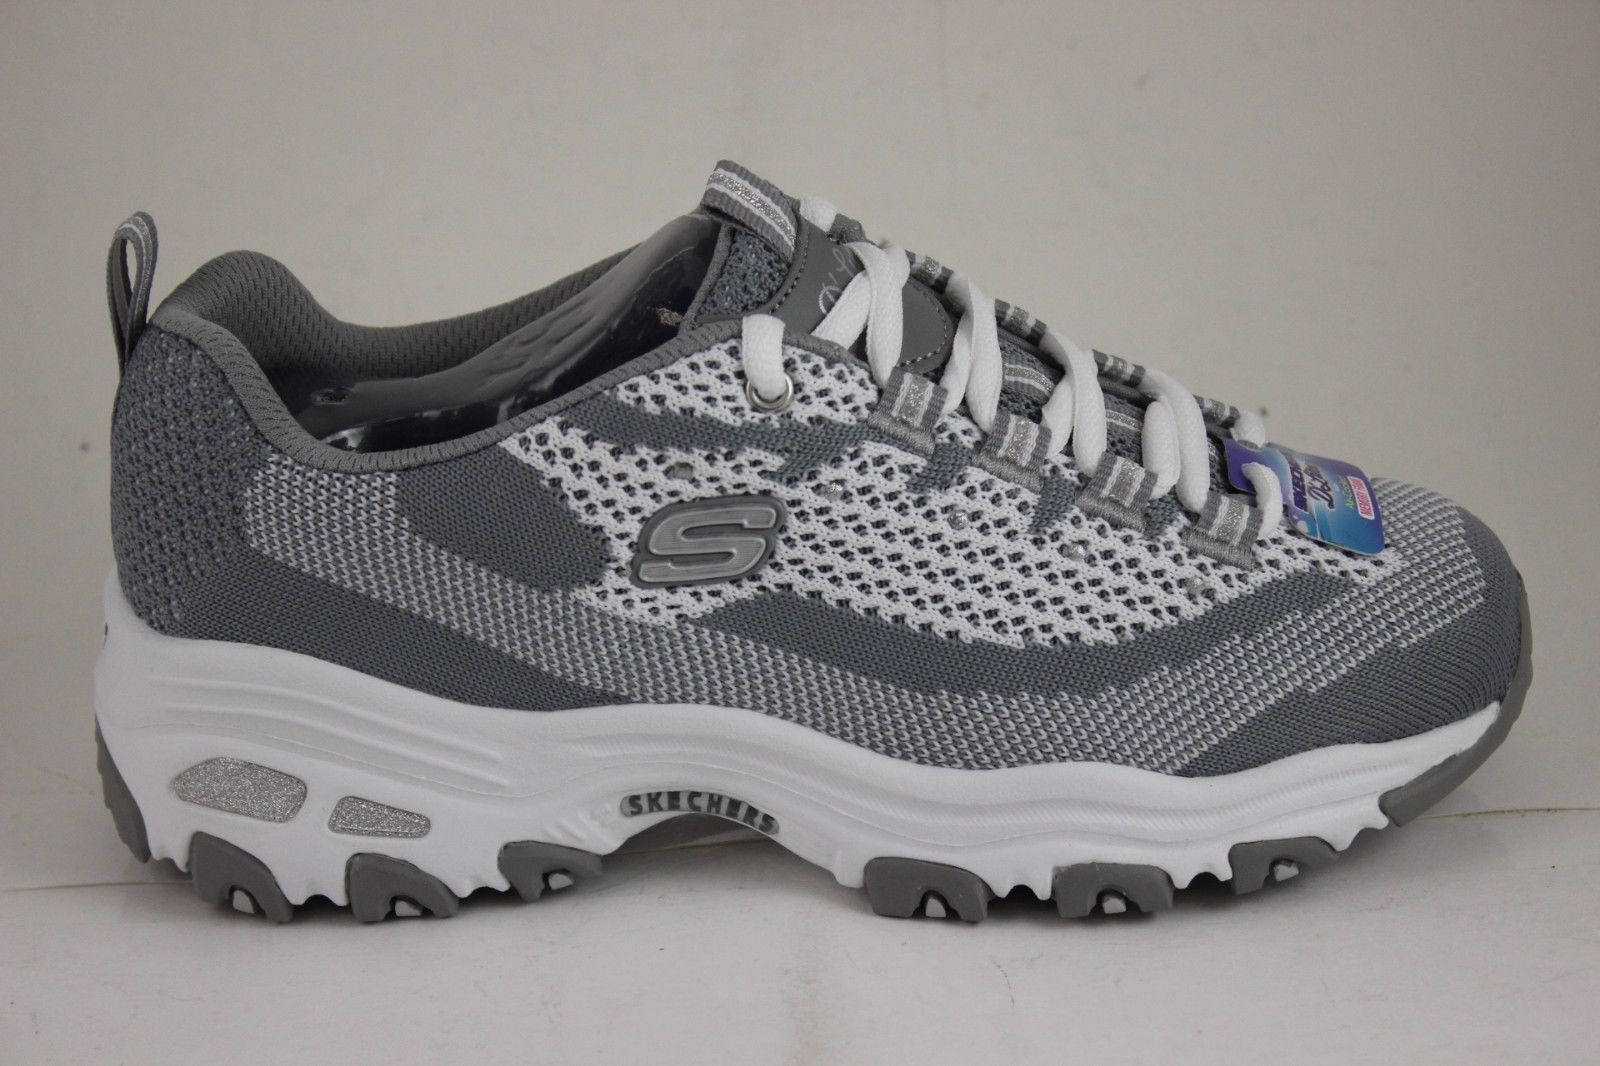 66ae2387a3ee Skechers D Lites Reinvention Gray White 11955 Gyw Air Cooled Memory Foam